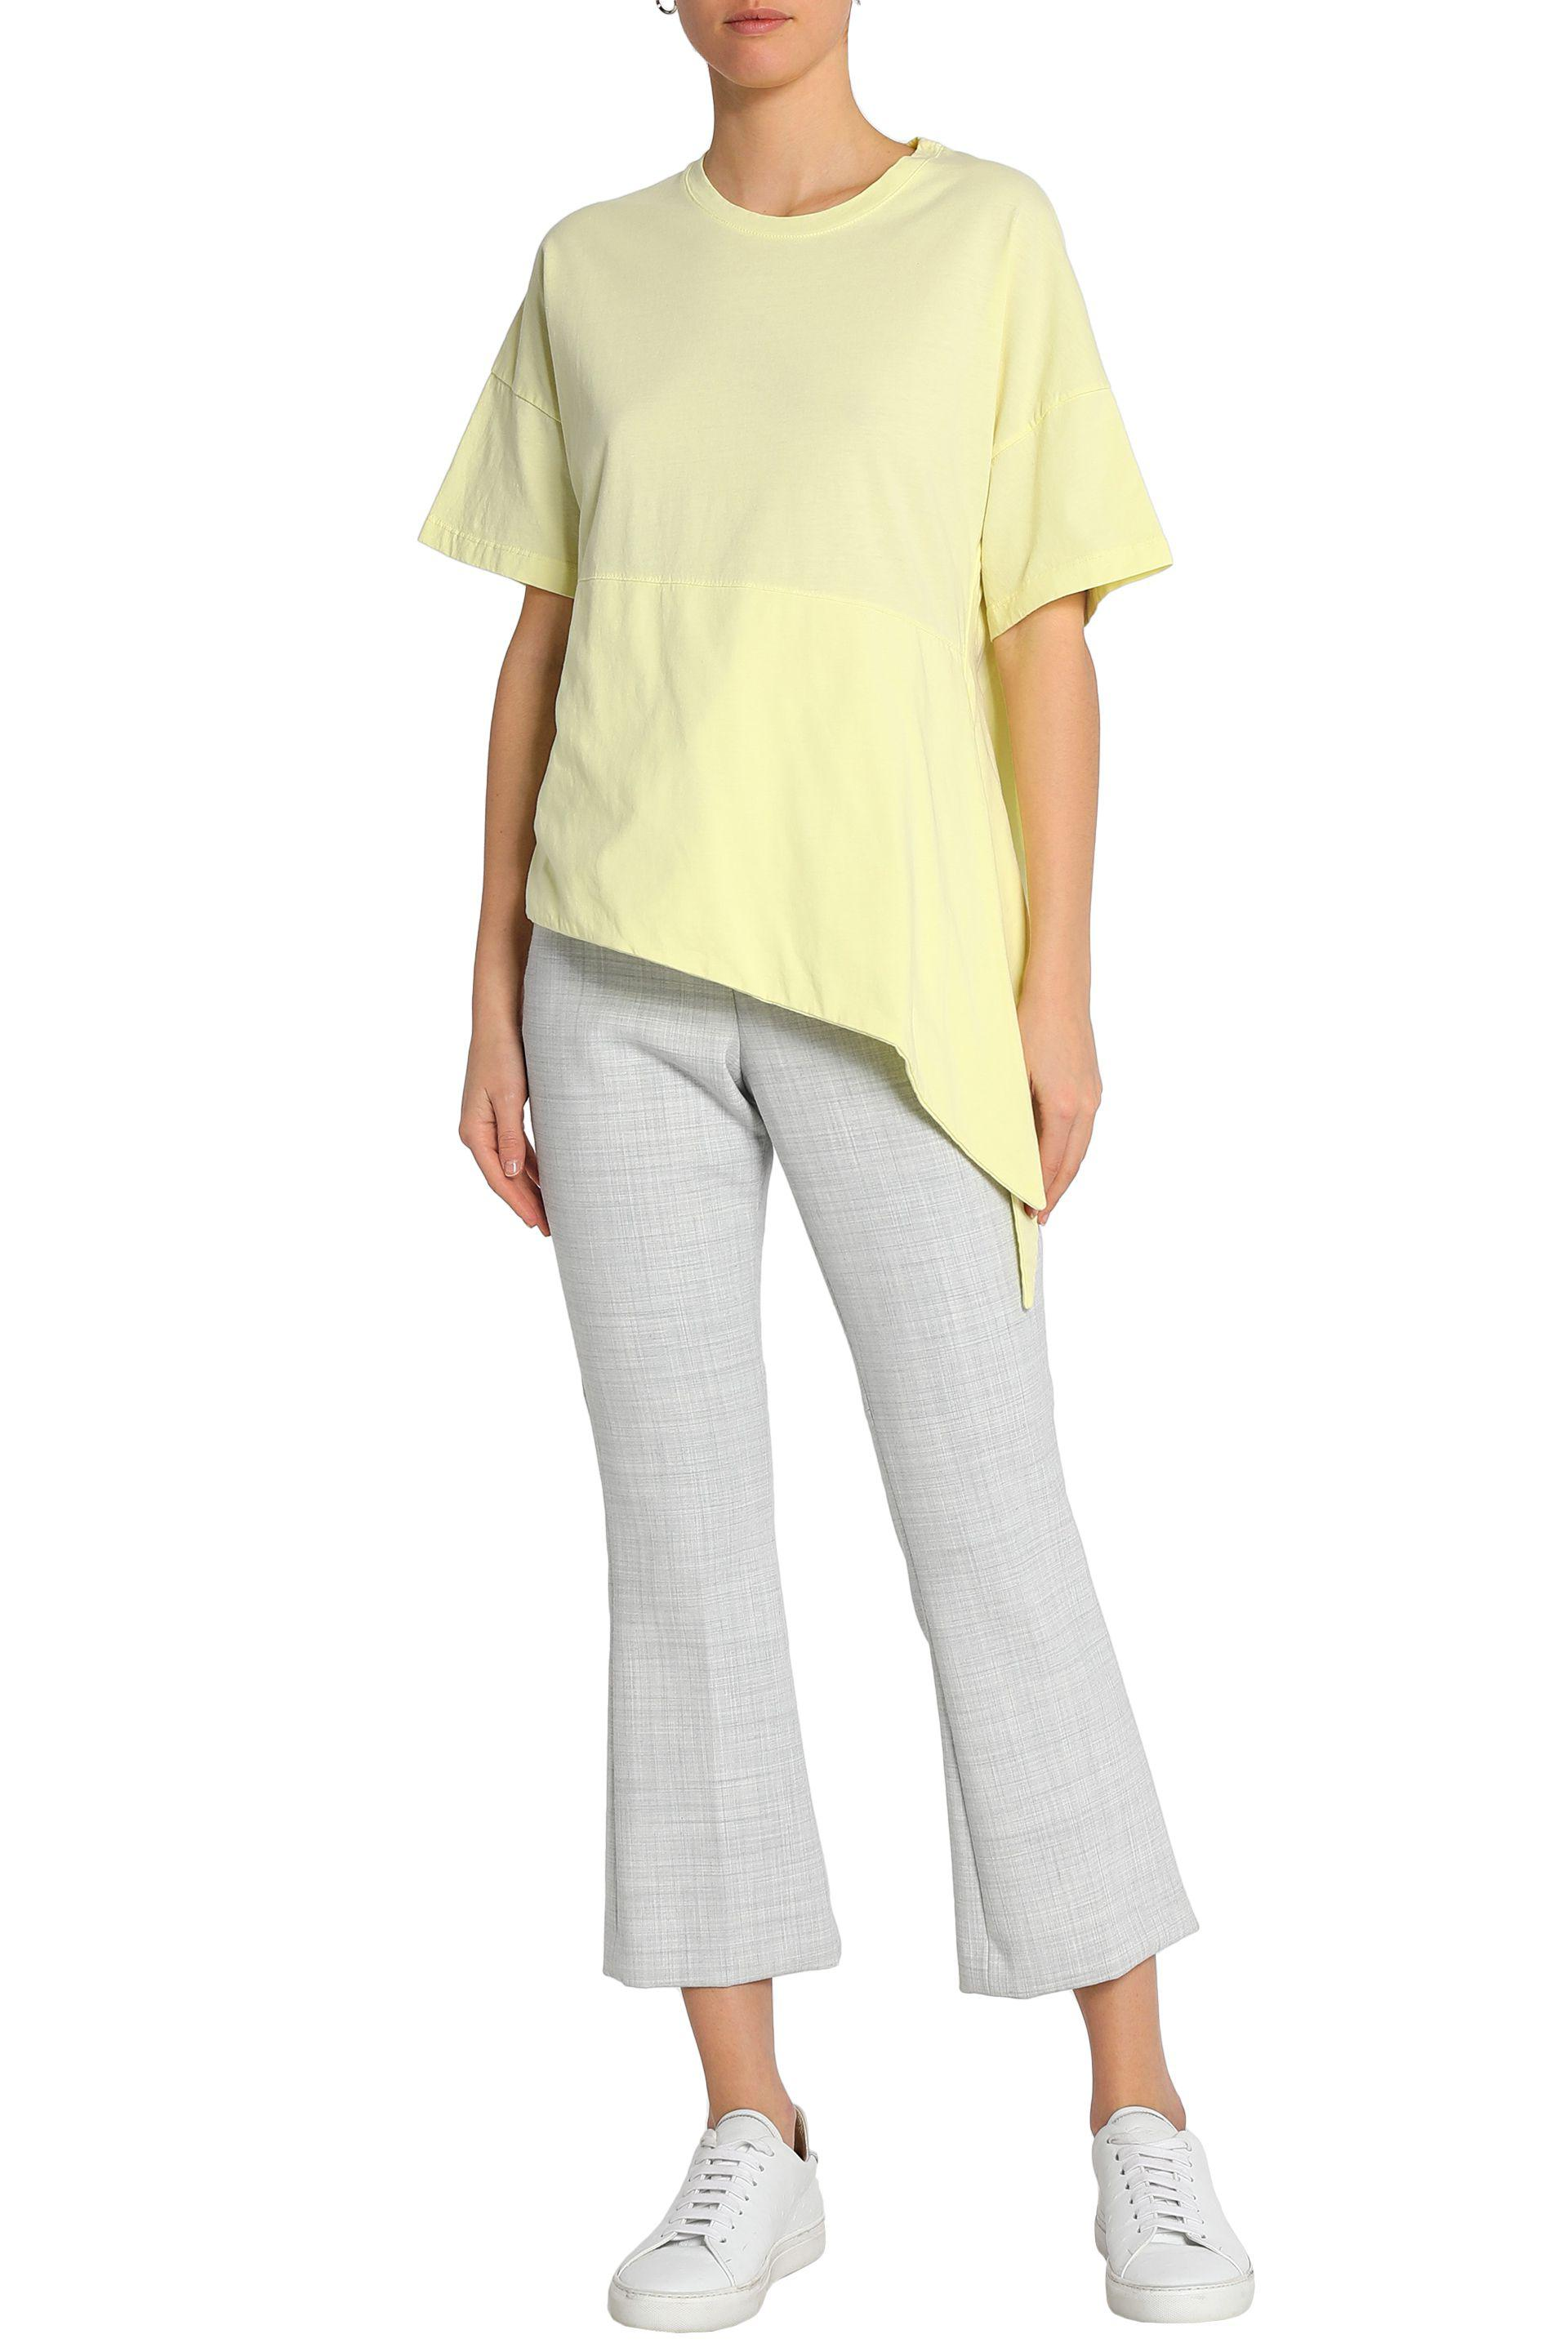 Lyst Iris Ink Asymmetric Cotton Jersey T Shirt In Yellow